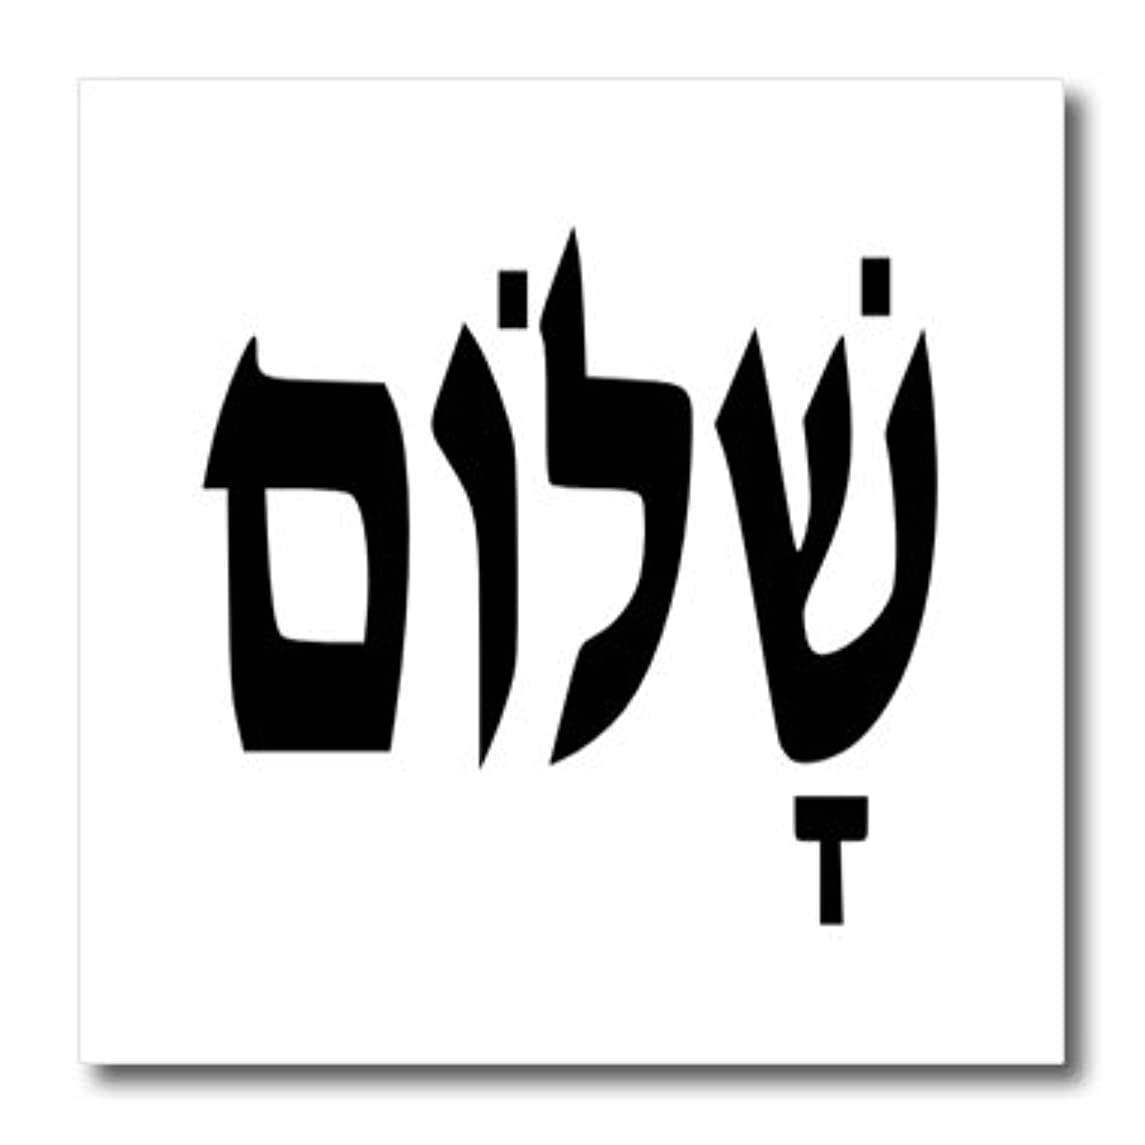 3dRose ht_109483_1 Hebrew Word Shalom Meaning Hello or Peace-Iron on Heat Transfer for White Material, 8 by 8-Inch